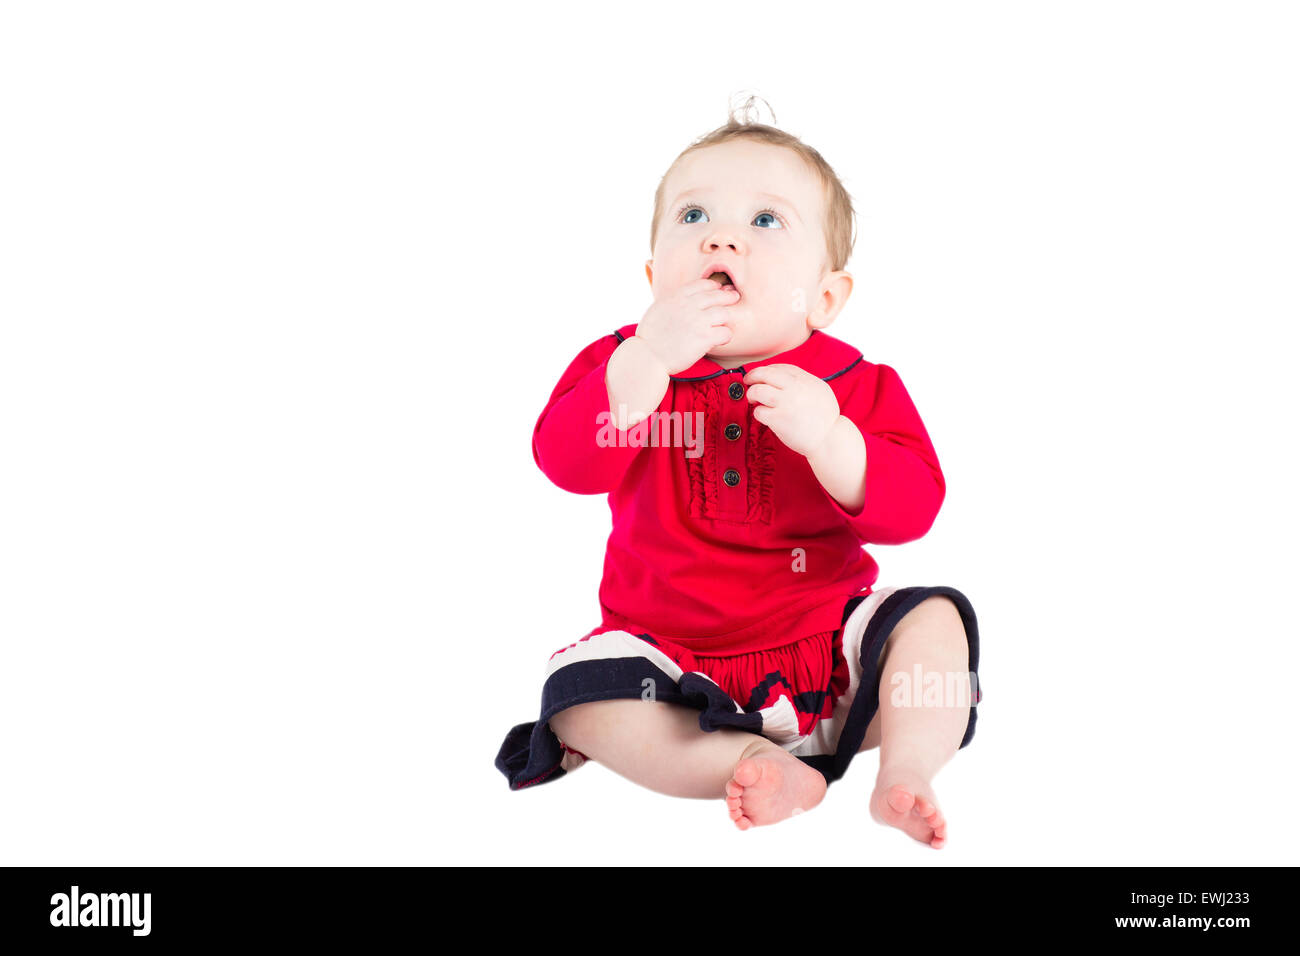 Cute baby girl in a red dress, isolated on white - Stock Image